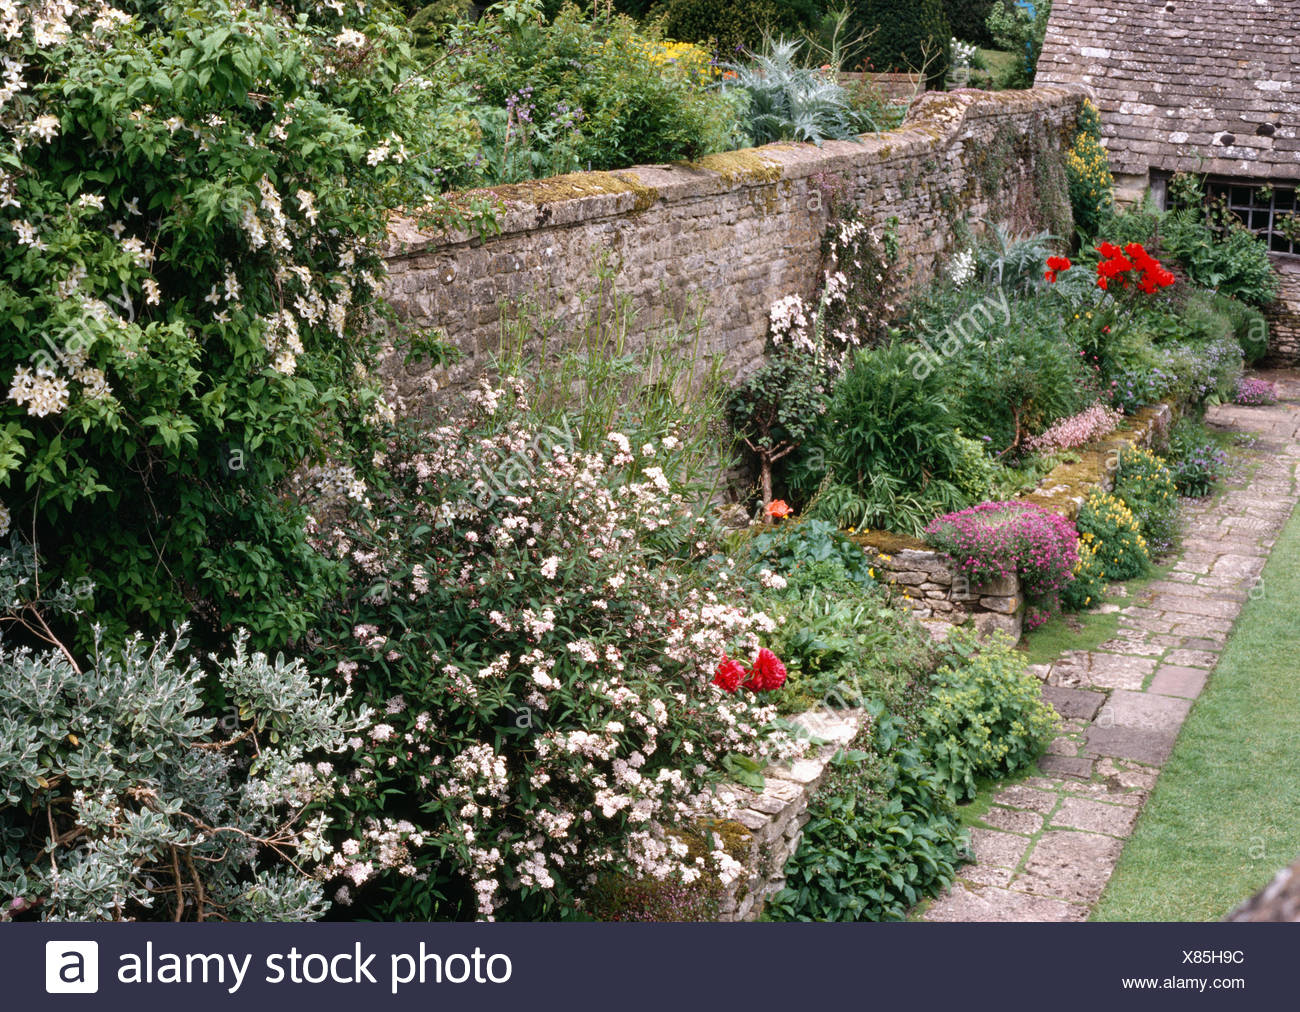 Border Planted With Perennials And Flowering Shrubs In Walled Garden